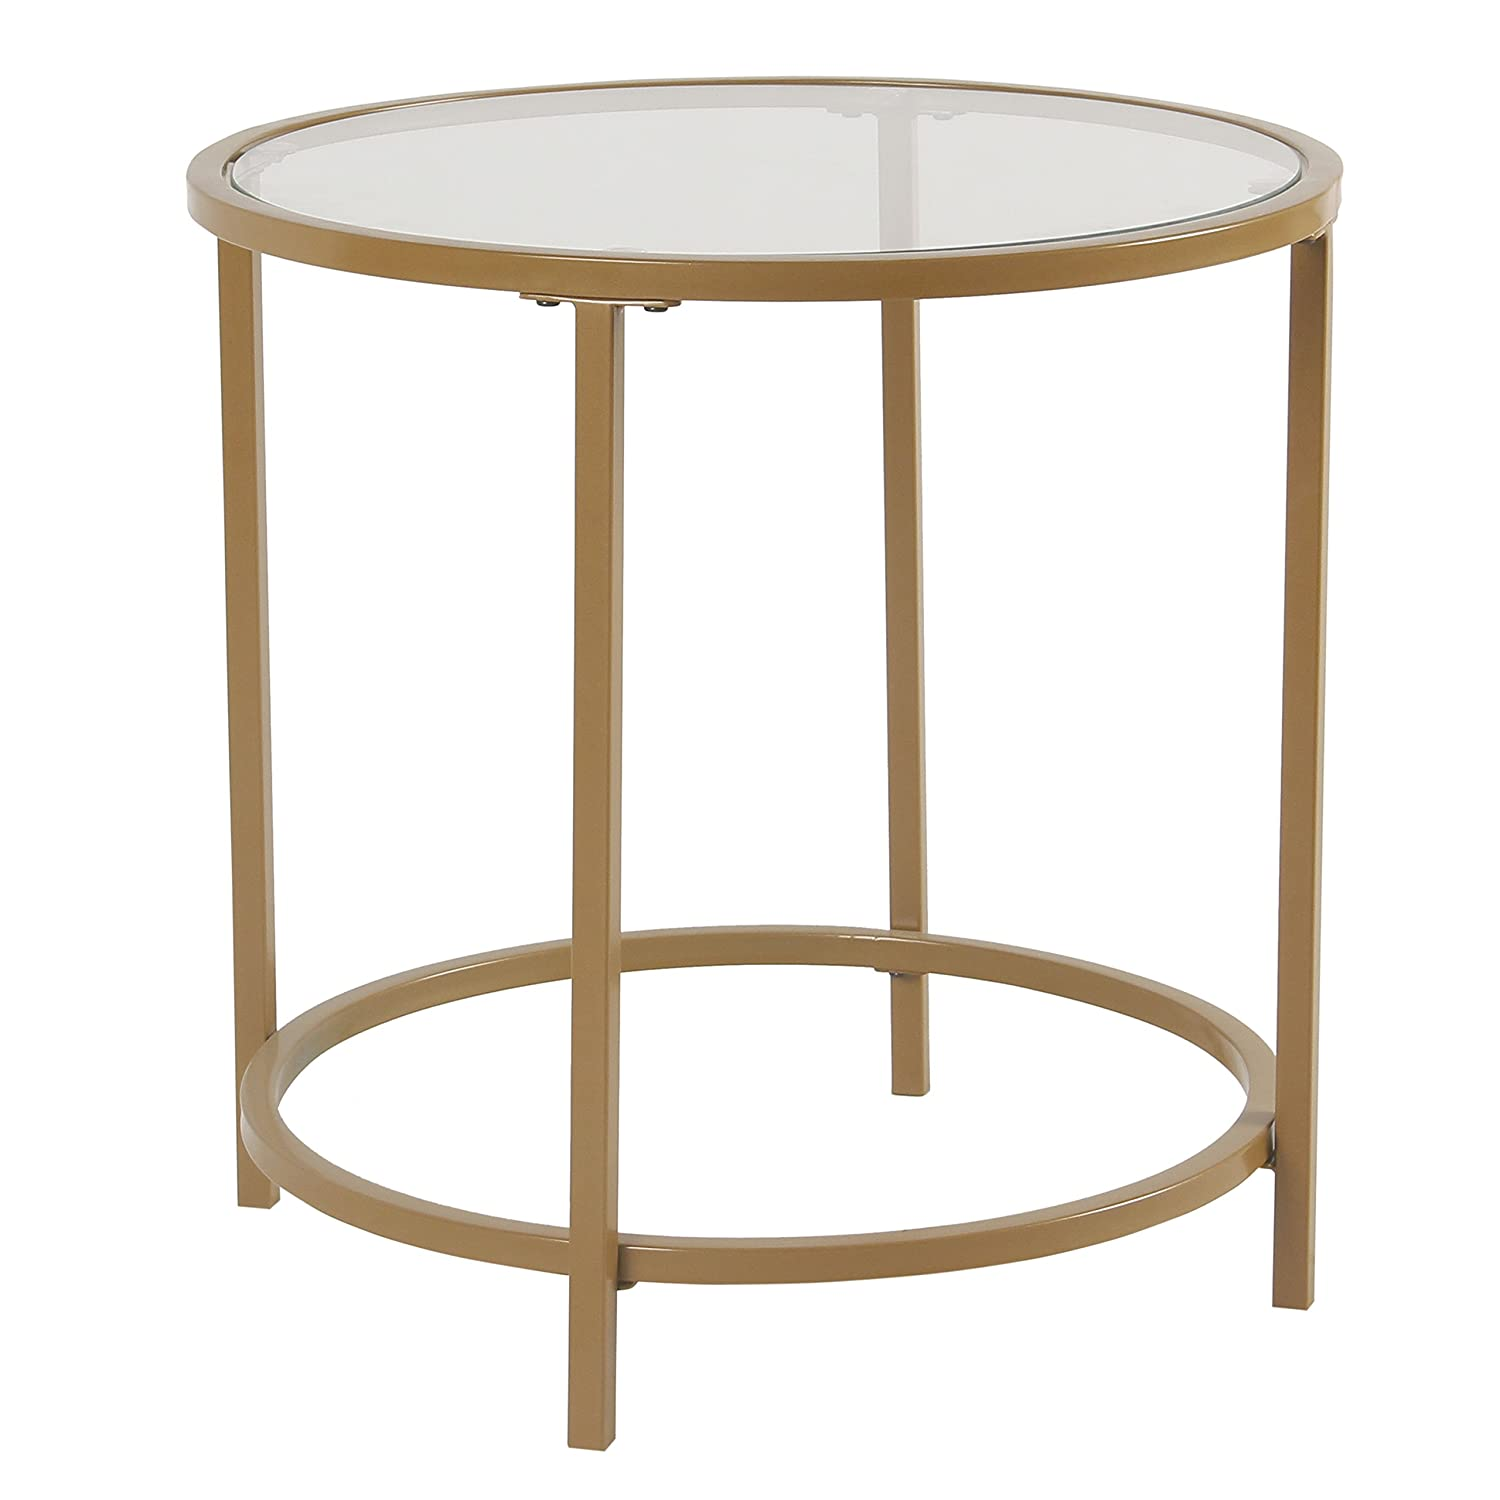 Amazon com spatial order round metal accent table glass top gold kitchen dining